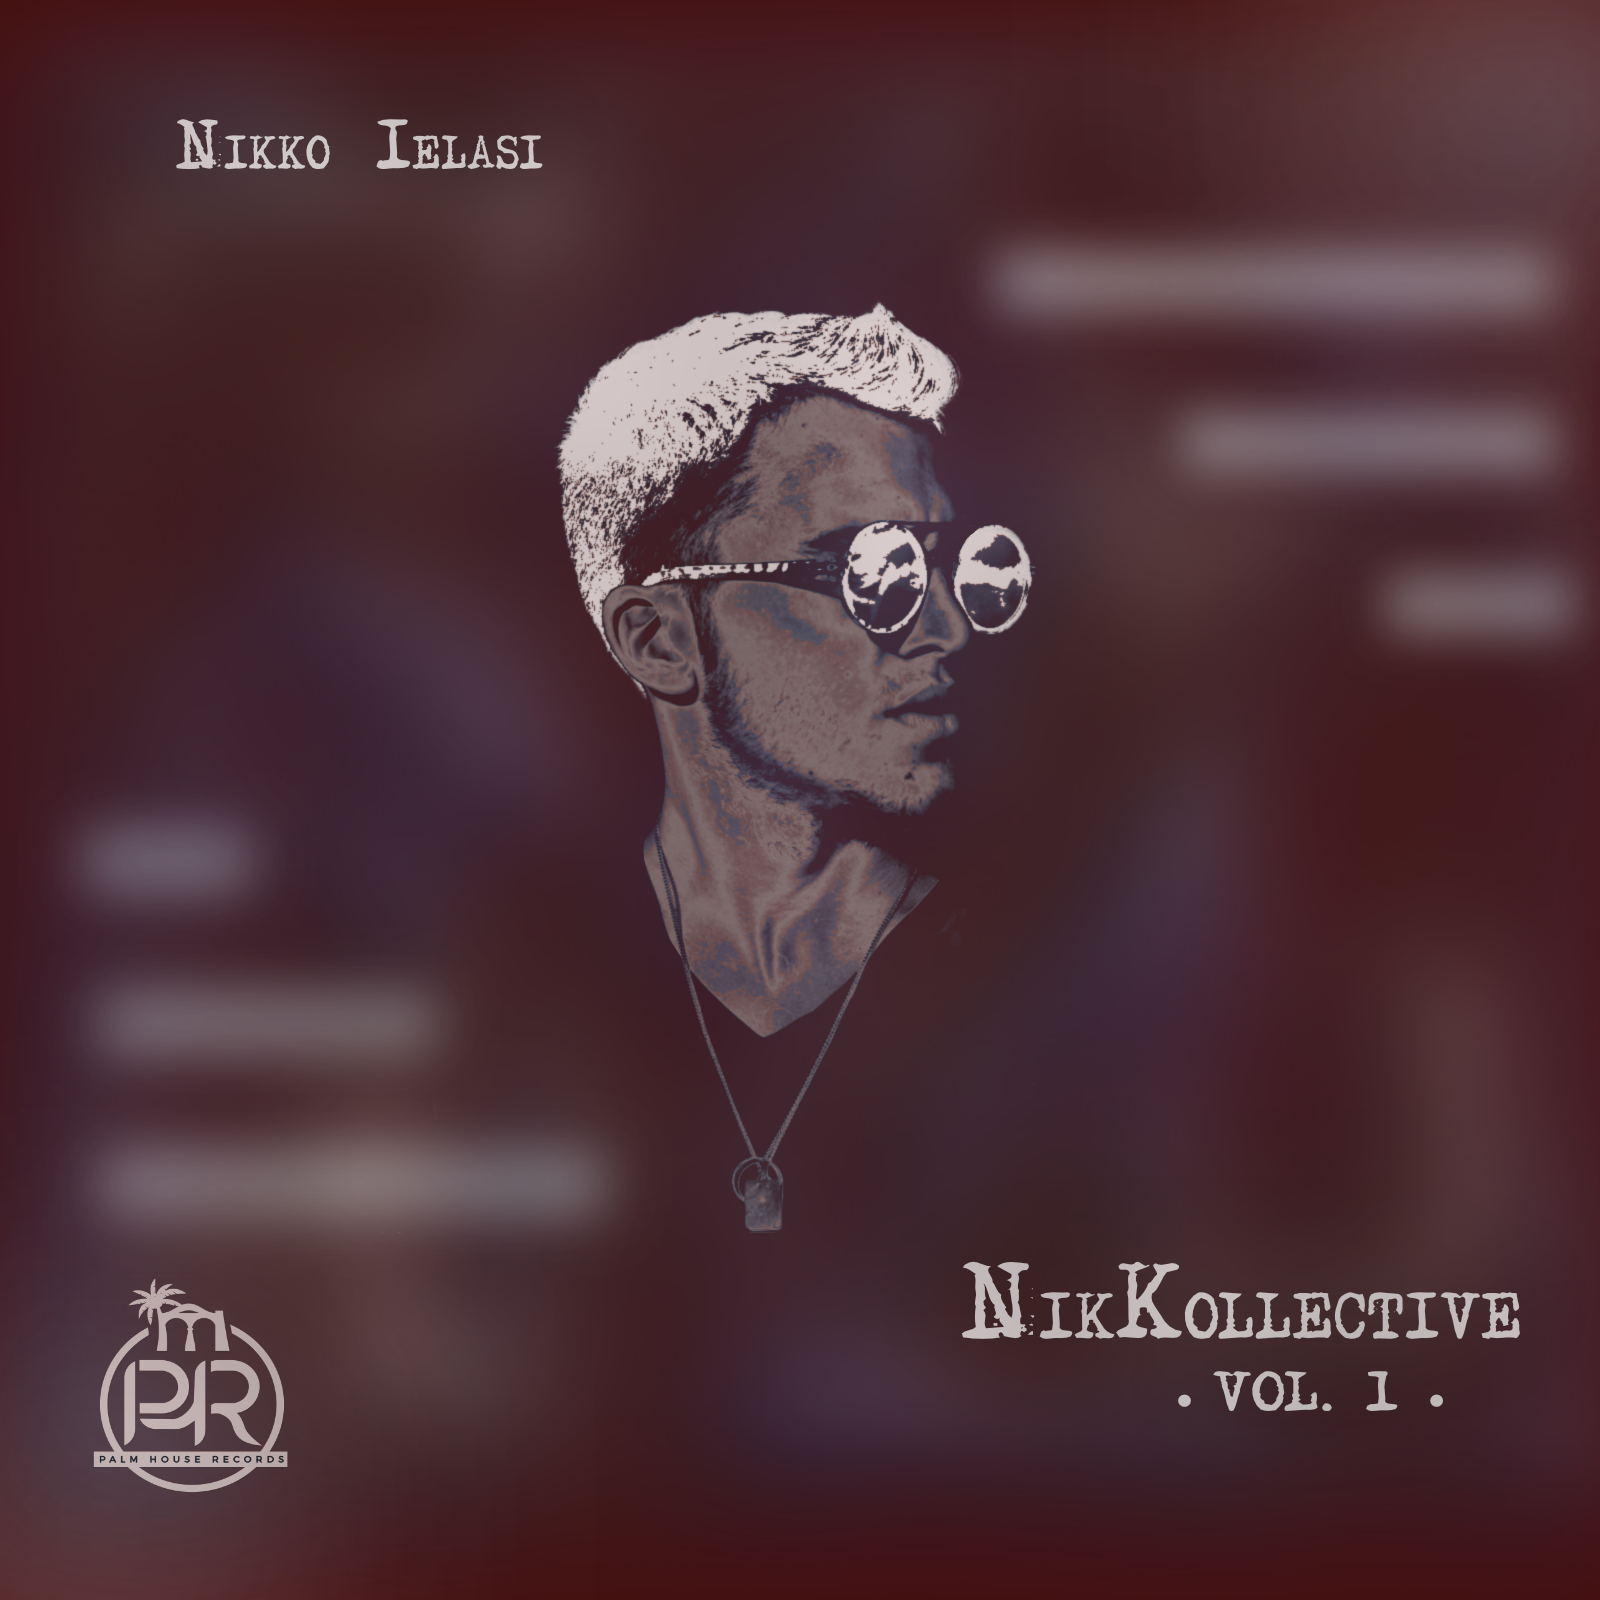 """NikKollective Vol. 1"" OUT NOW - Nikko's first original album,"